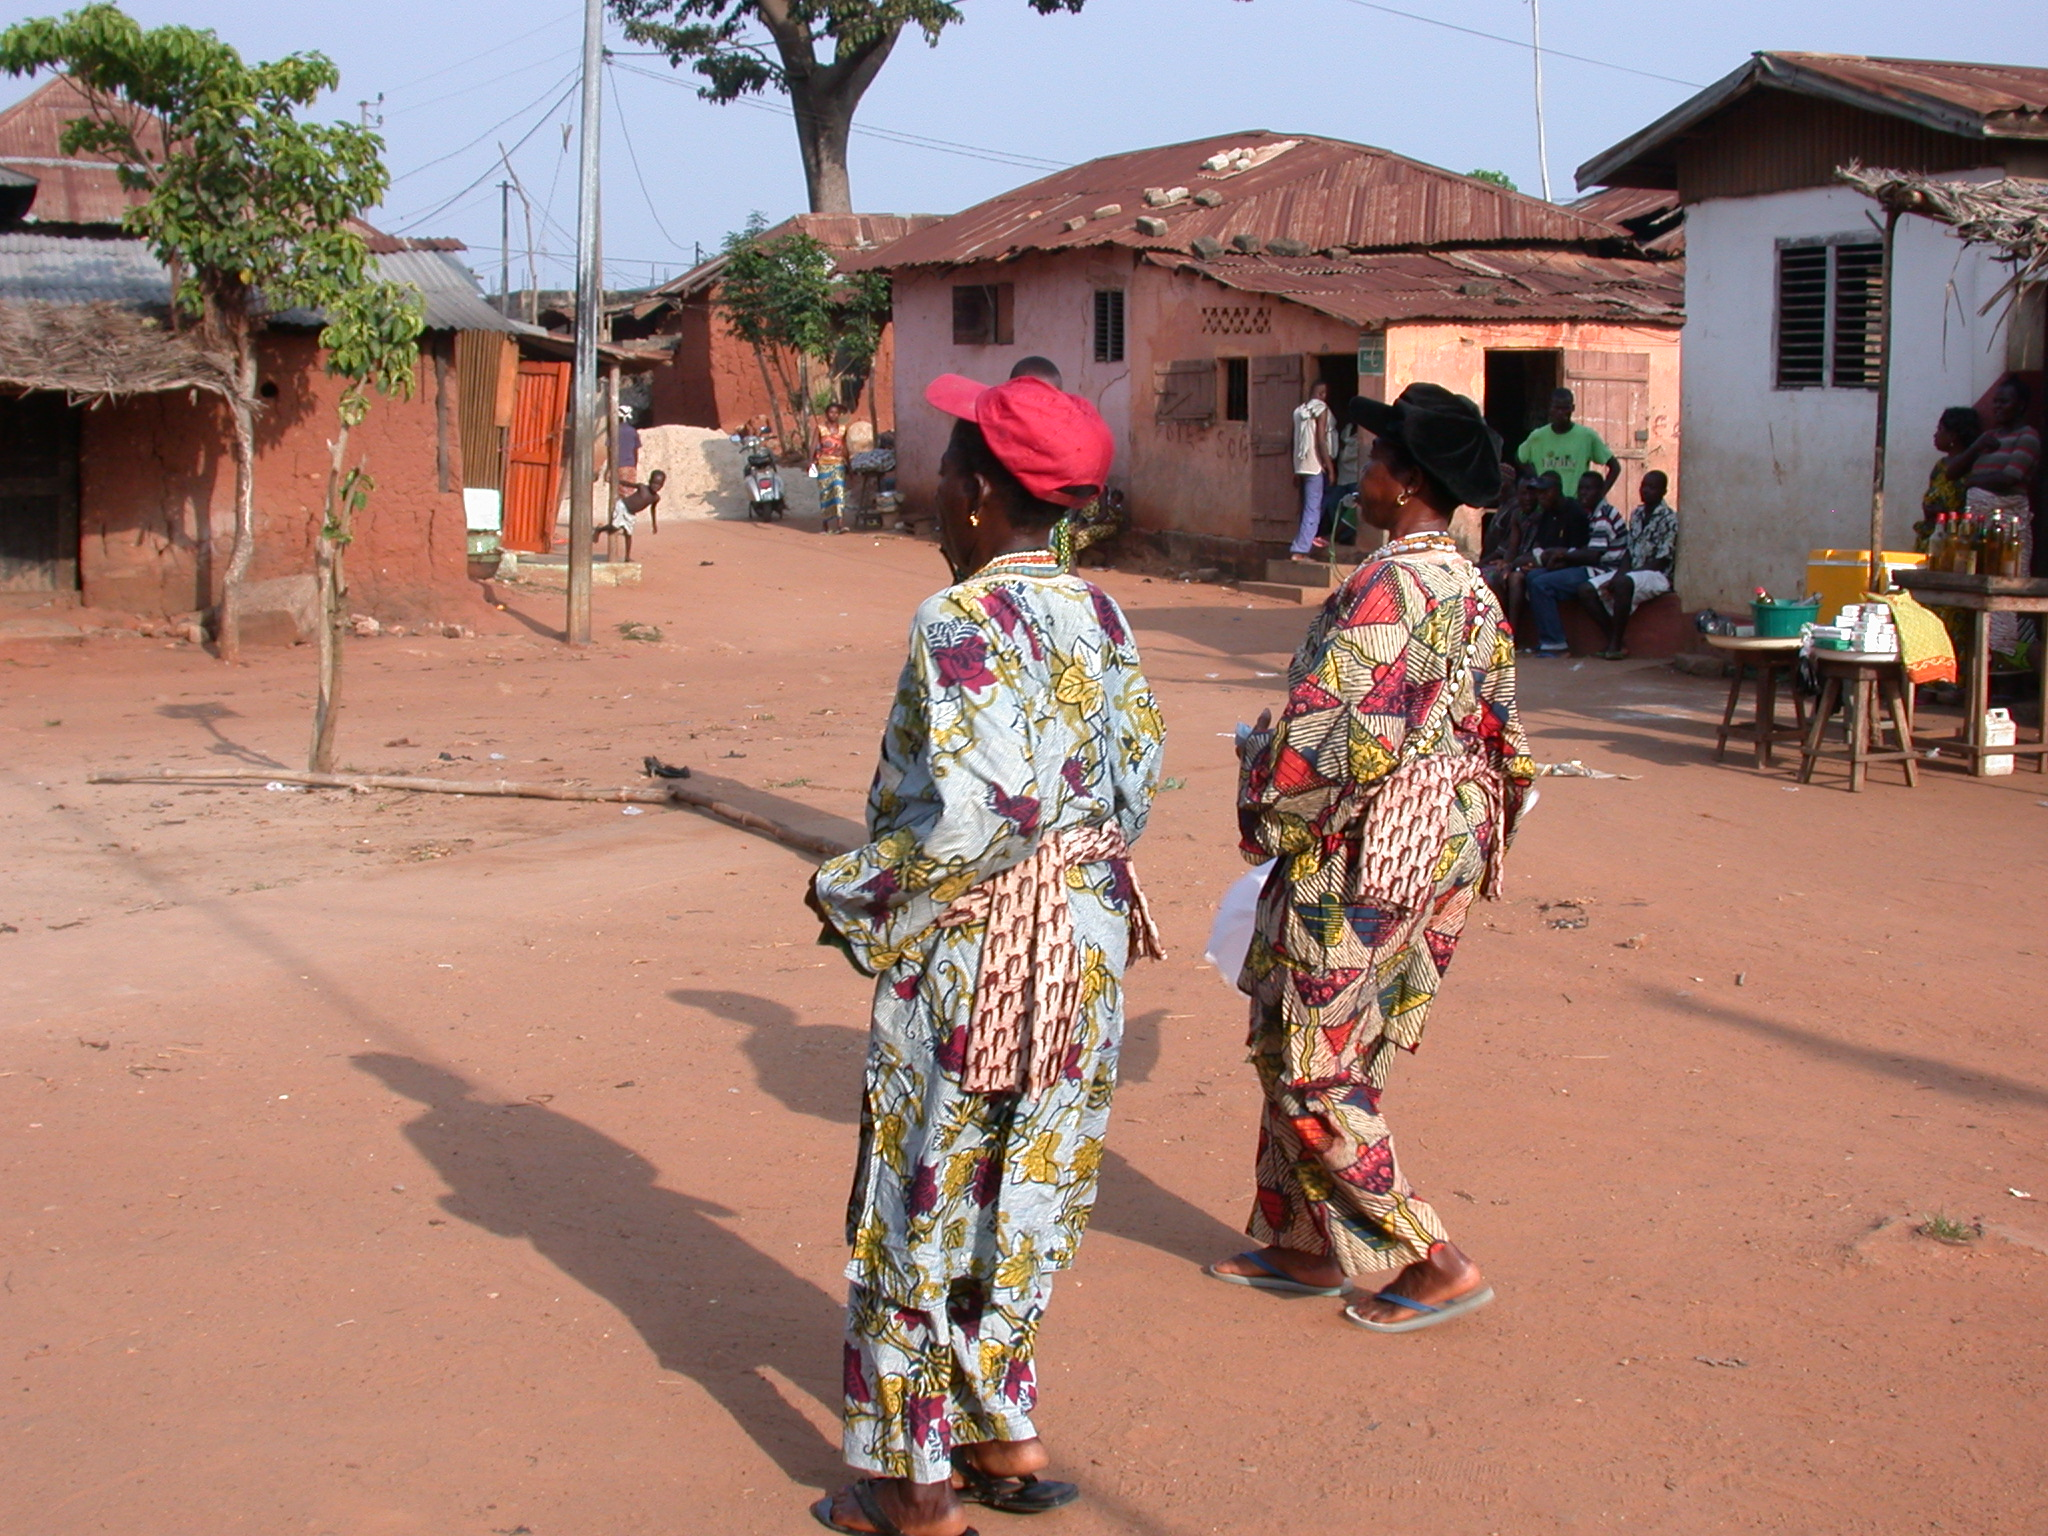 Women Blowing Whistles to Begin Vodun Ritual, Ouidah, Benin